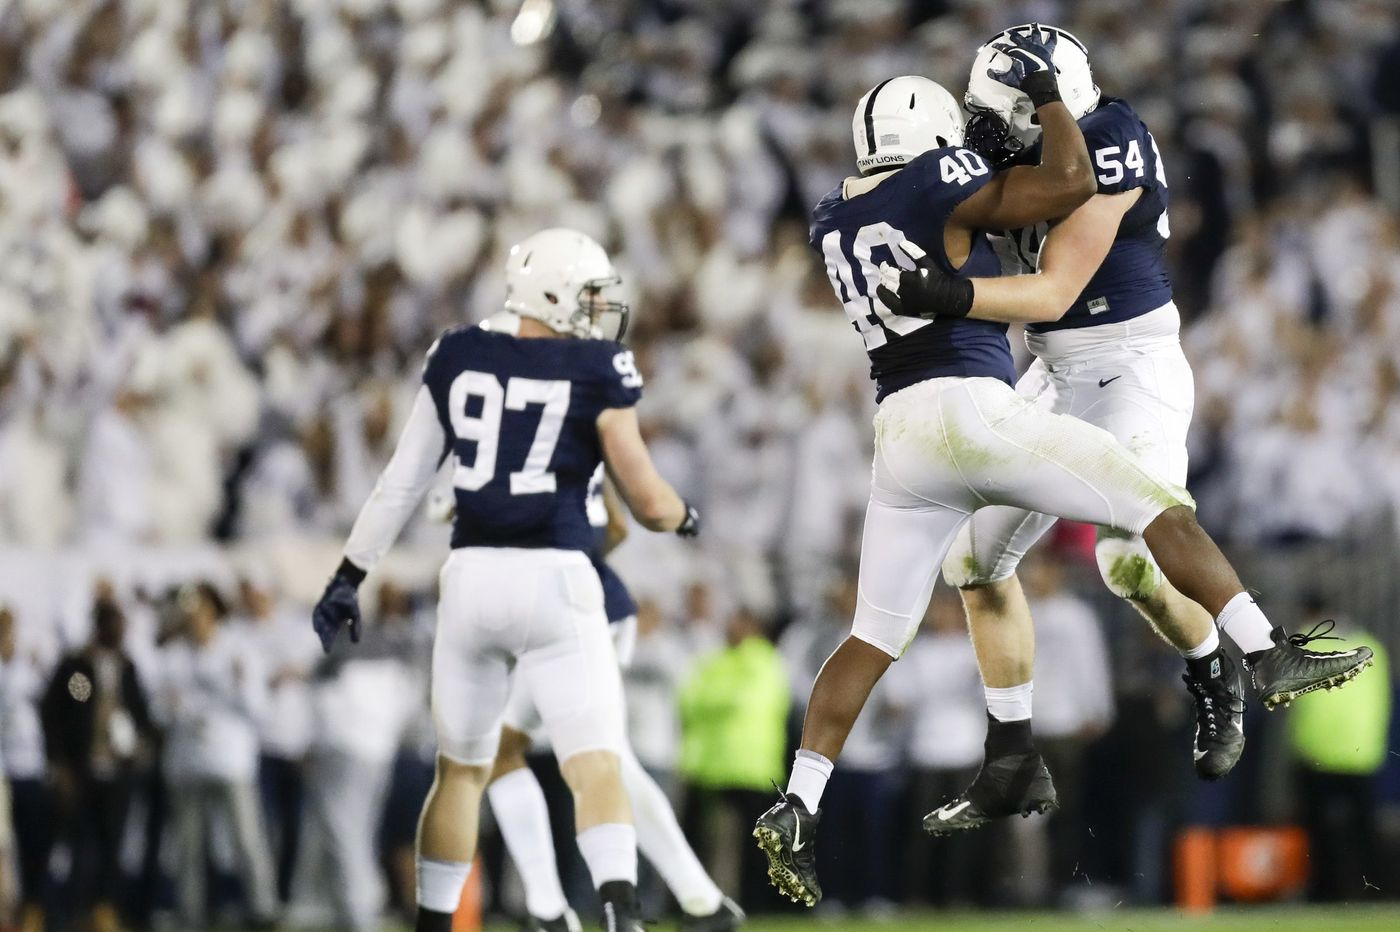 Big Ten Network fears Comcast could drop the service from its lineup as football season begins